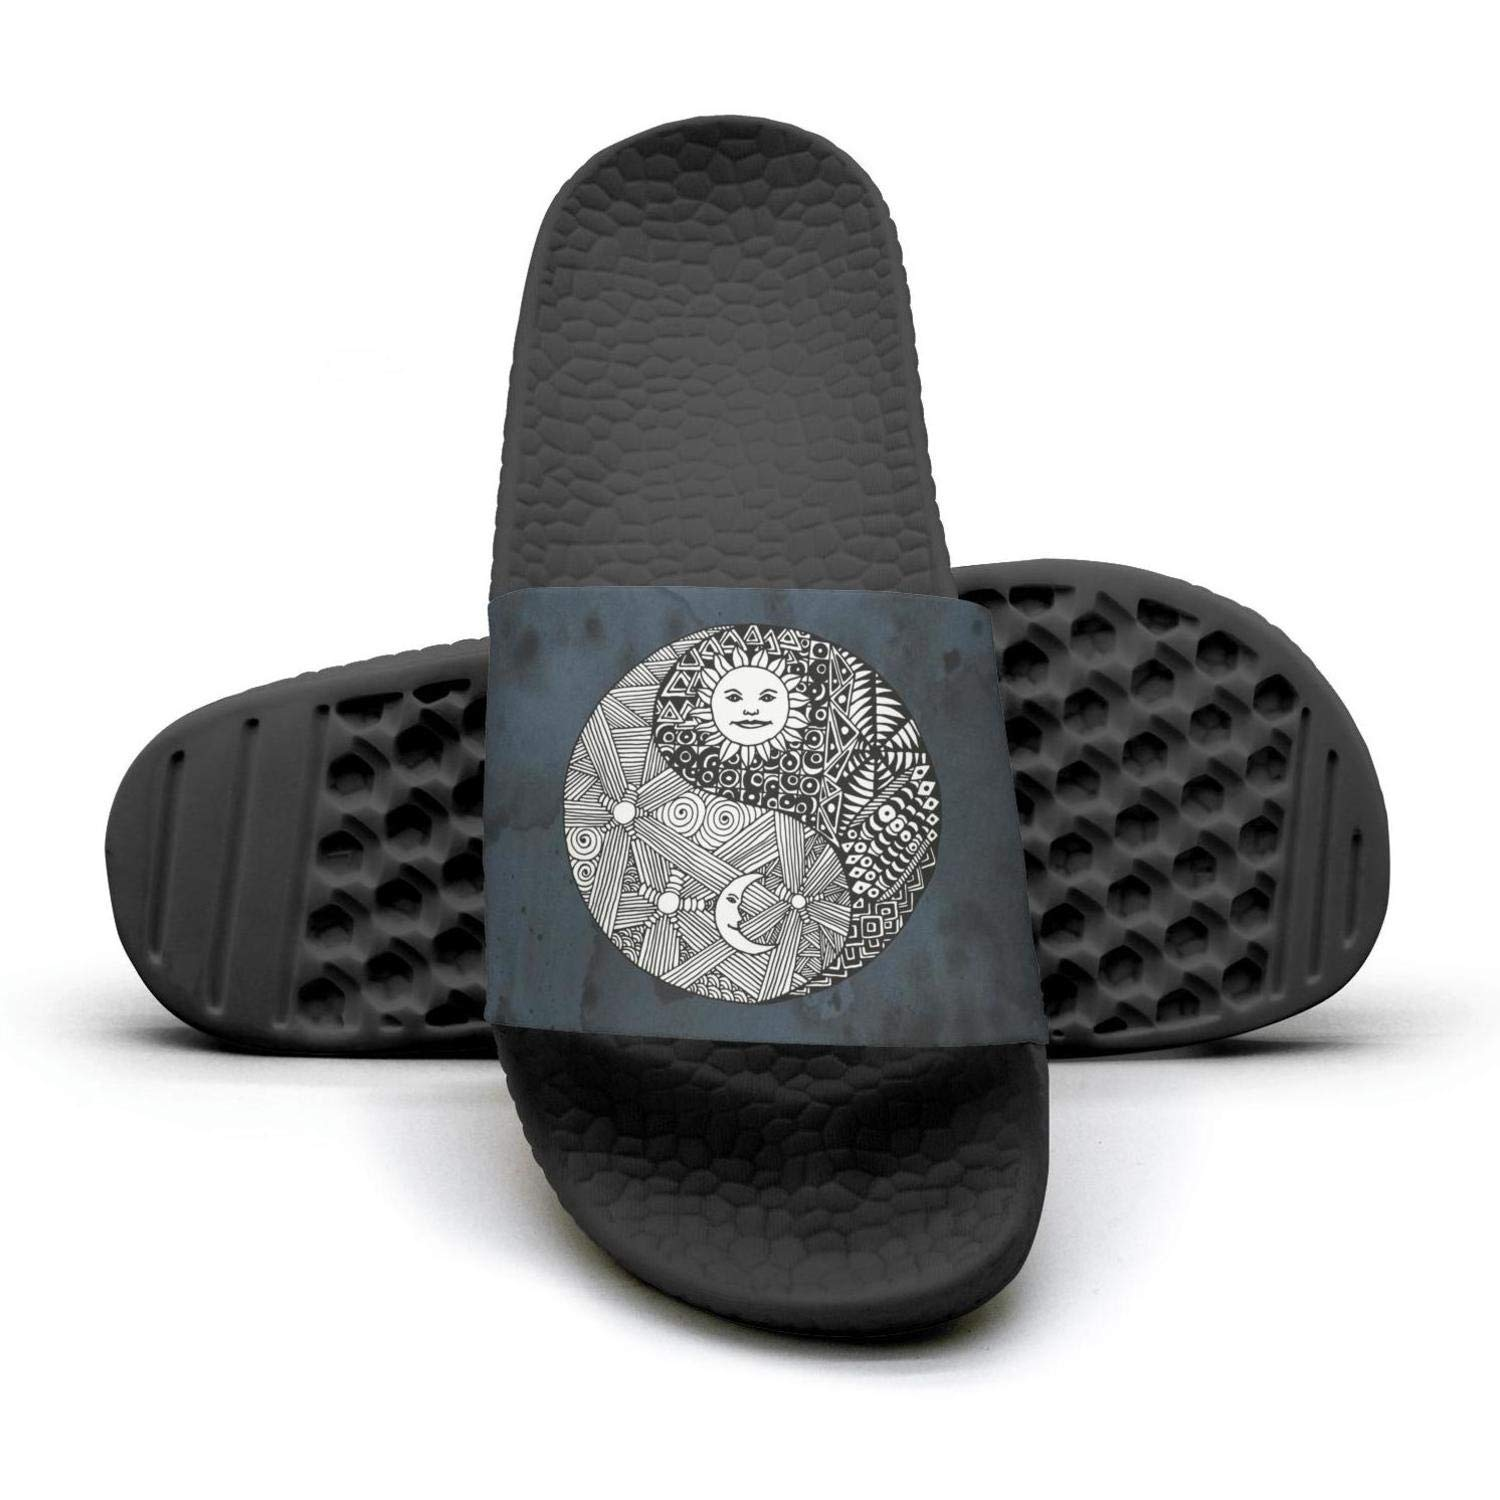 Yin yang sun moon at night Slippers Sandals Slippers for Men